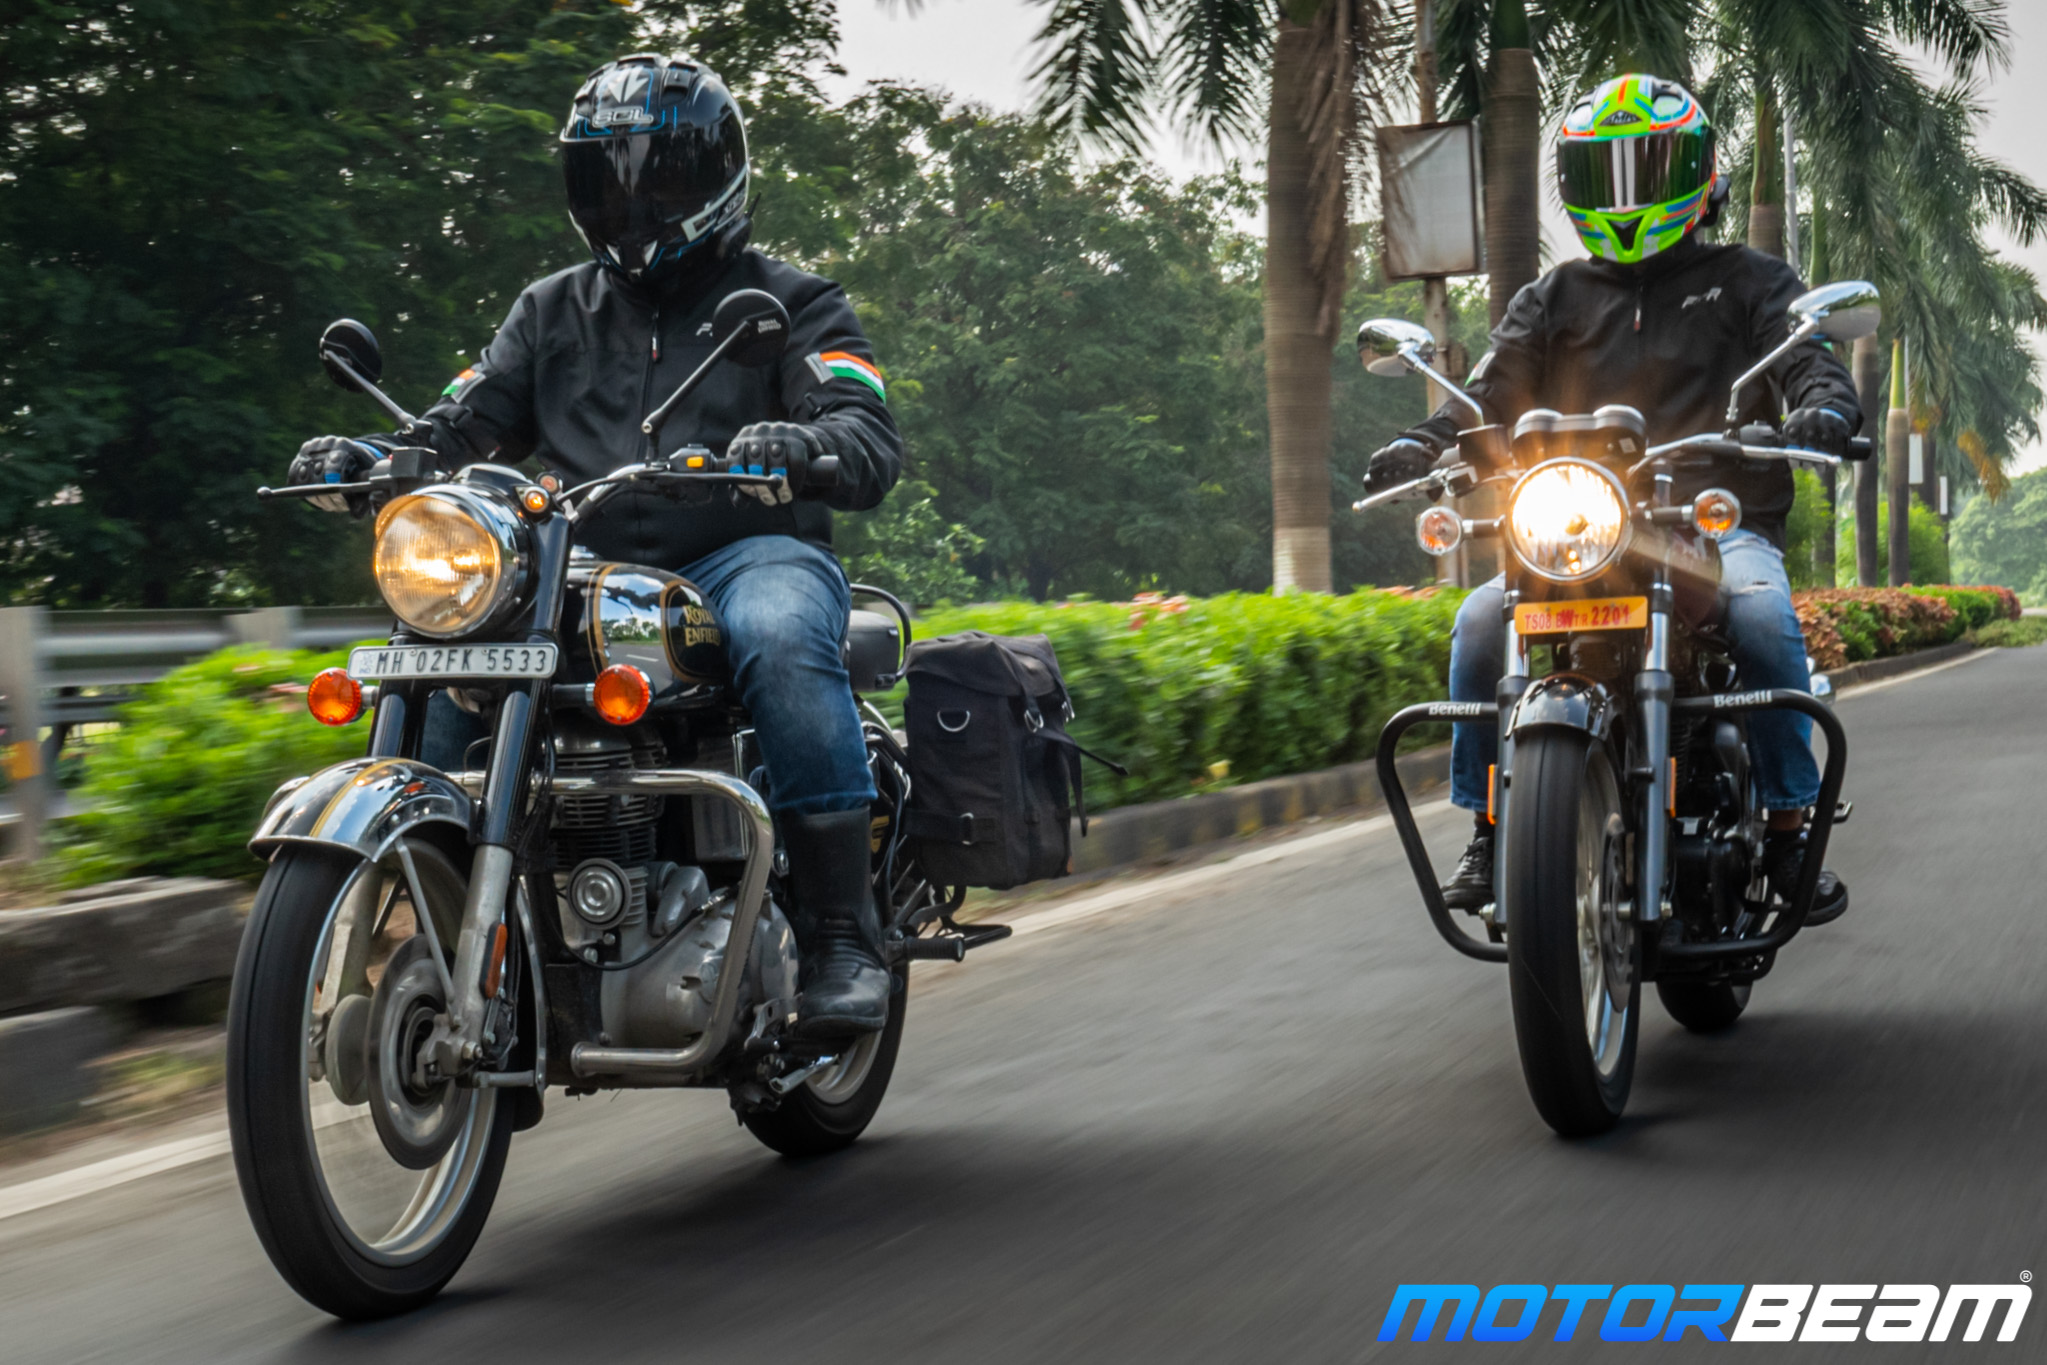 Benelli Imperiale 400 vs Royal Enfield Classic 350 Comparison Review 6